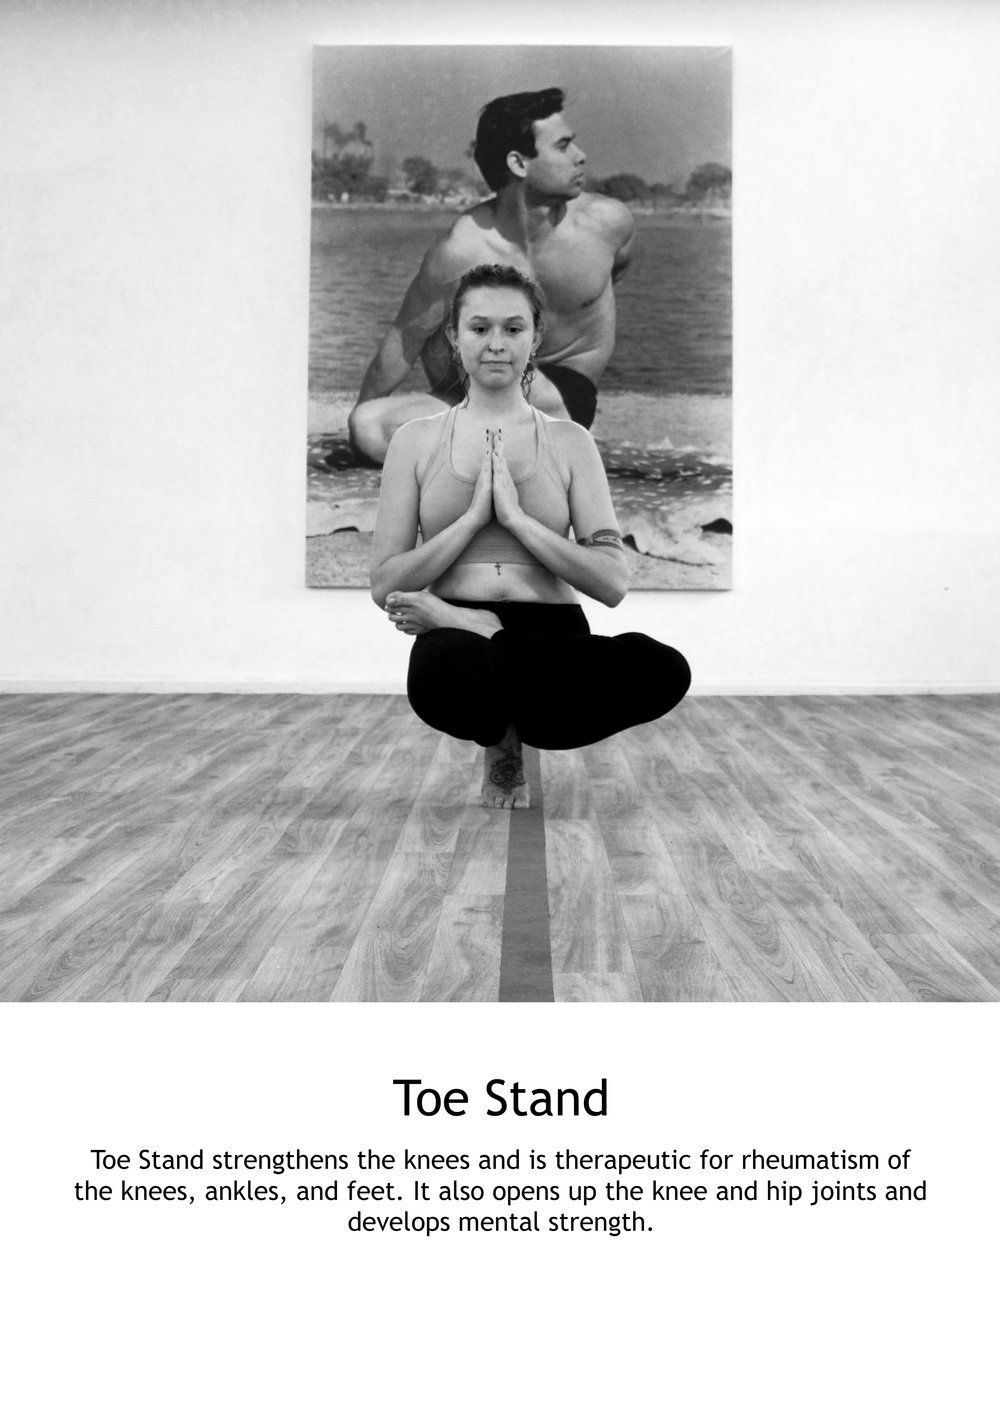 Toe Stand